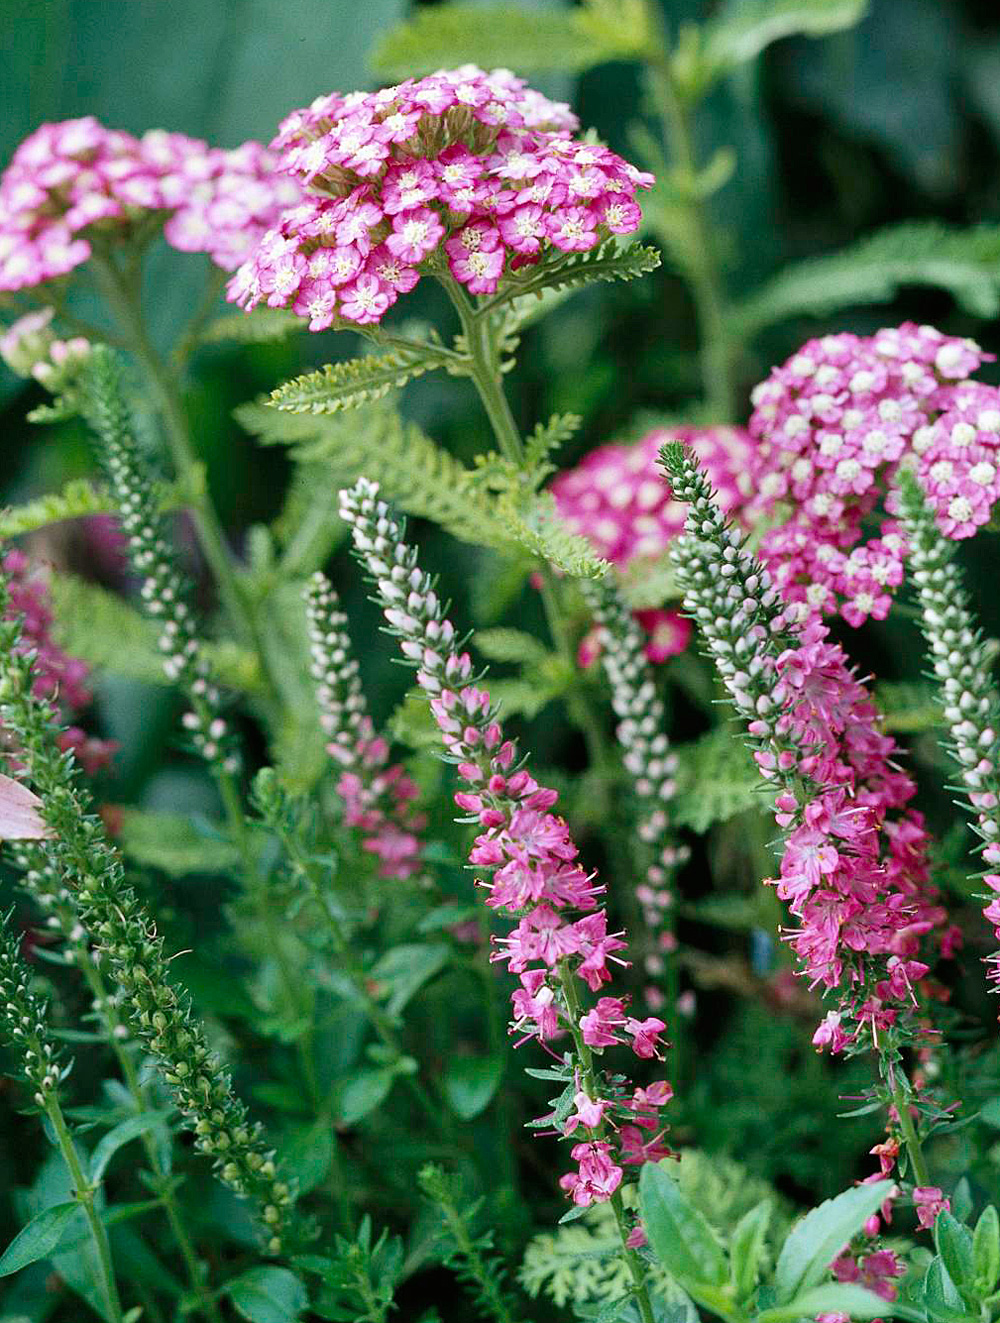 'Cerise Queen' yarrow and 'Tickled Pink' veronica